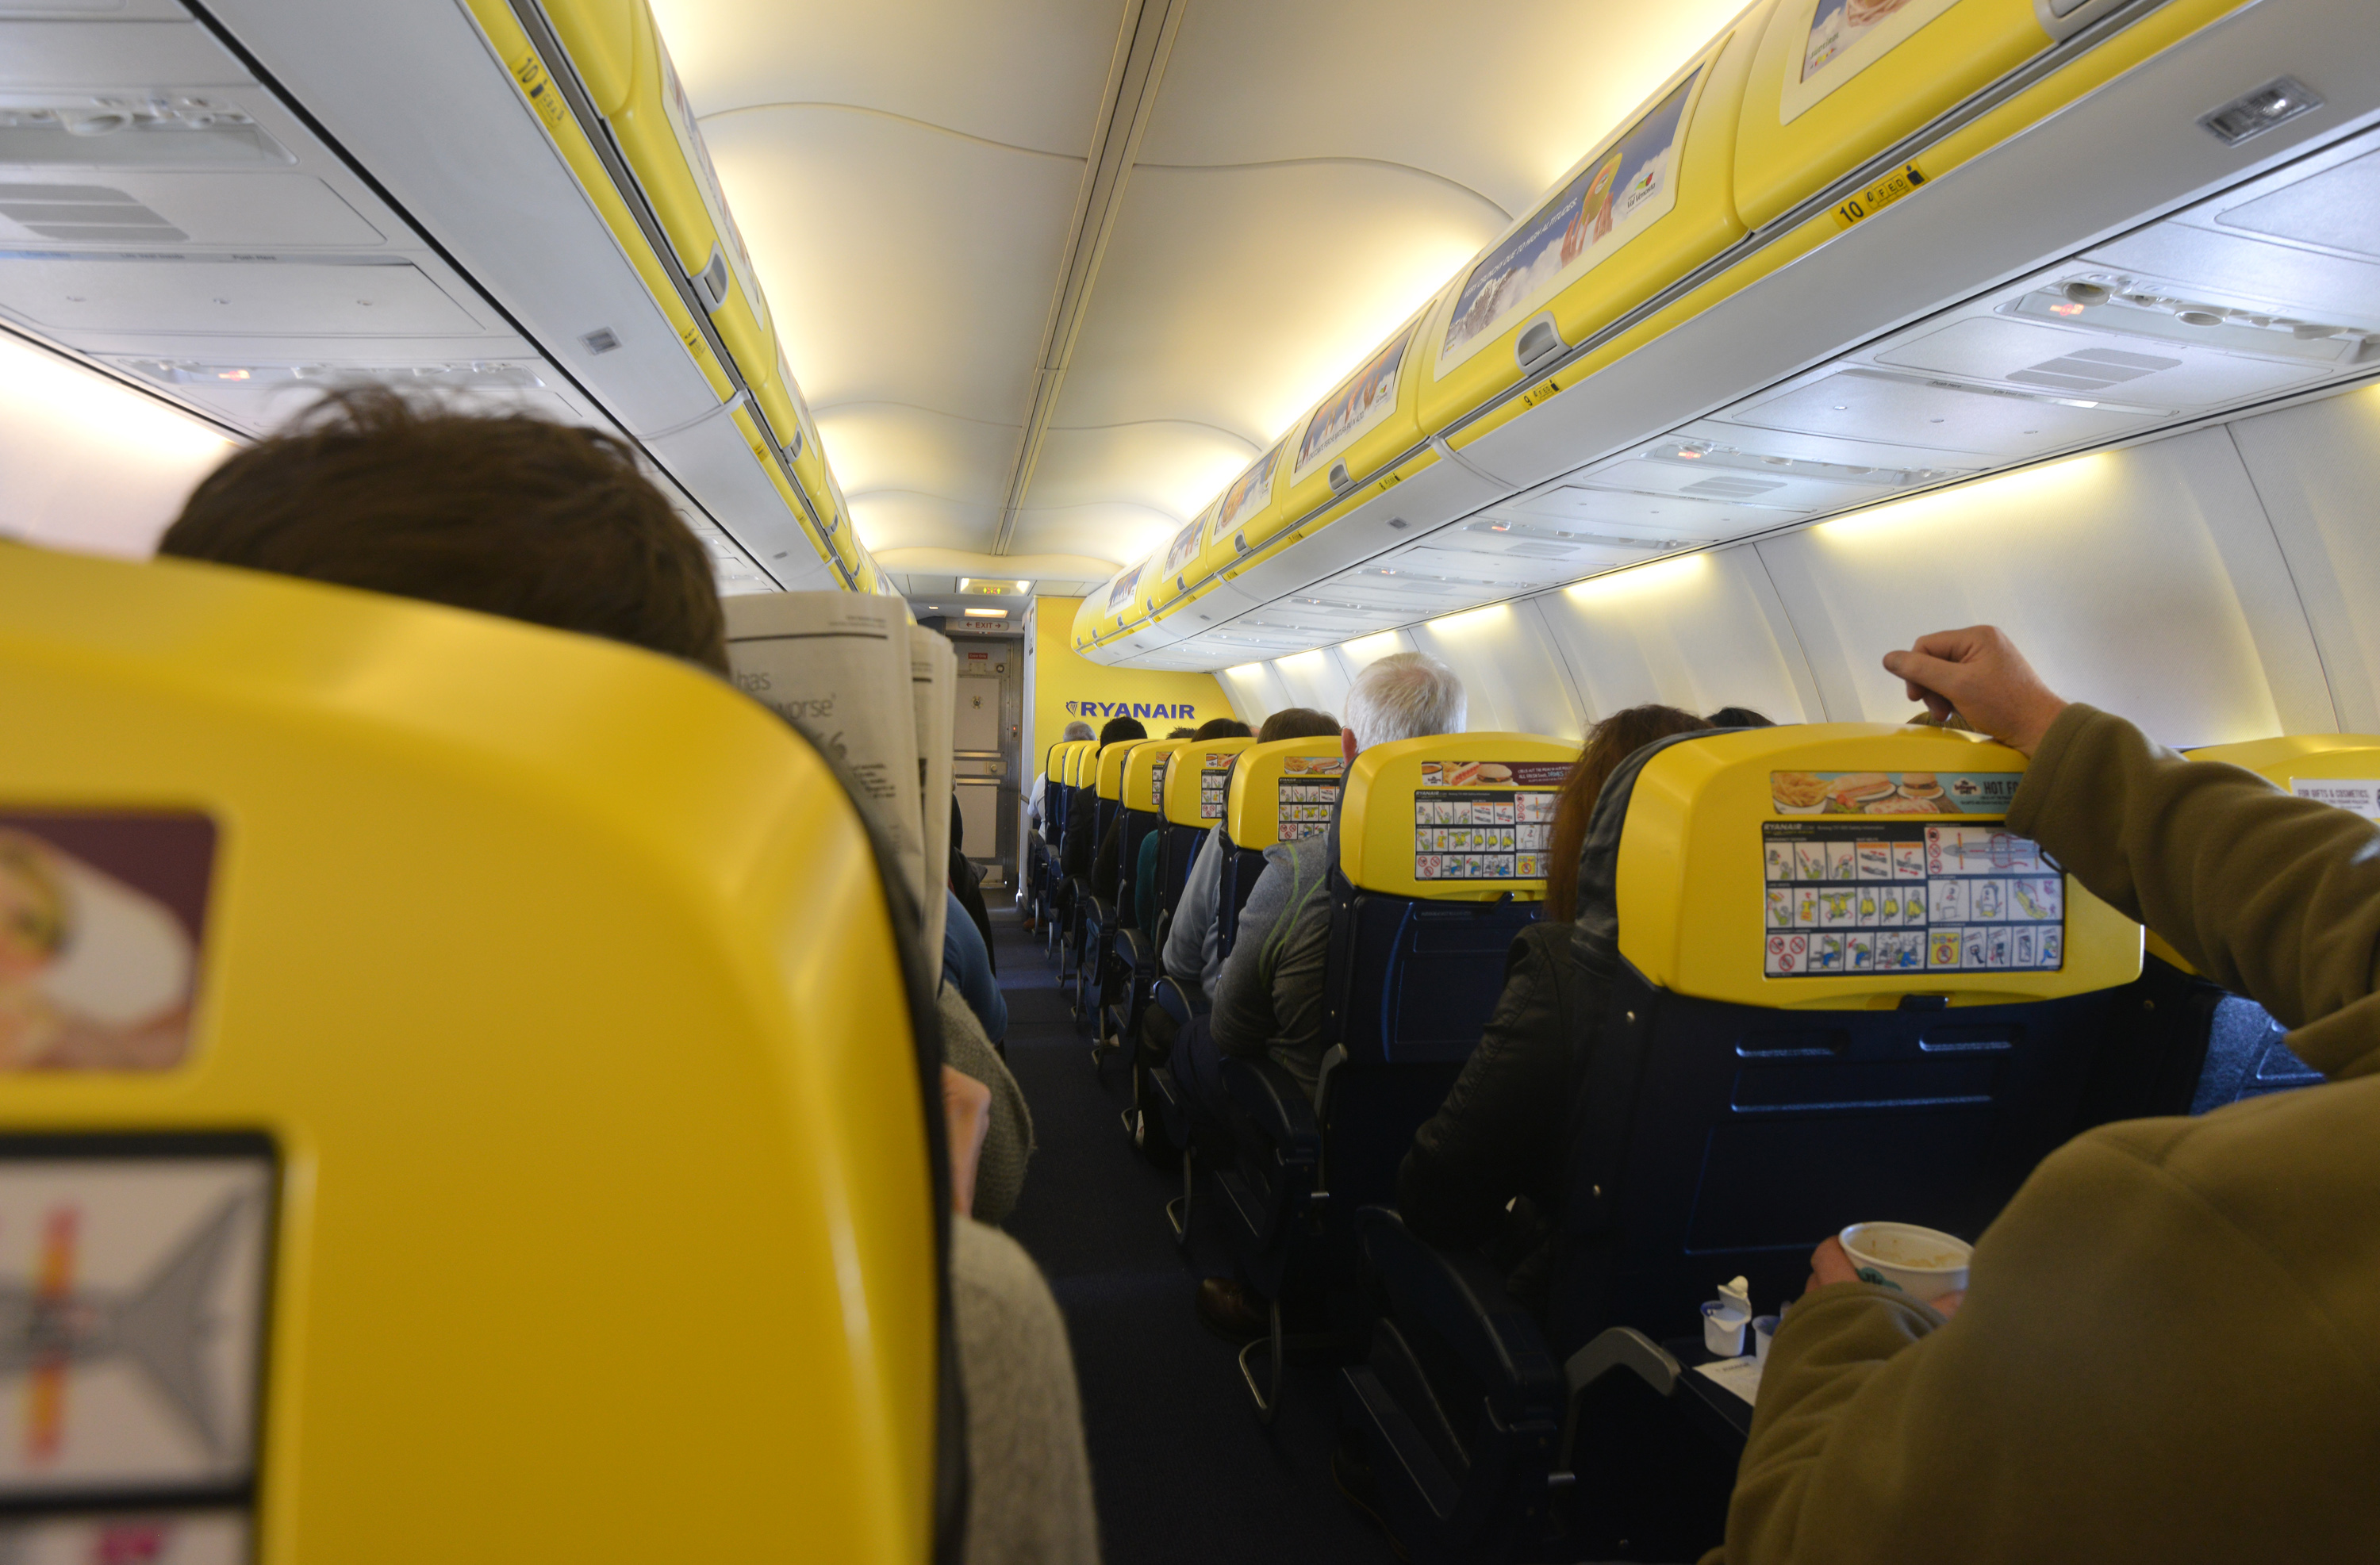 Commercial Aviation What Does Ryanair Do Without Sick